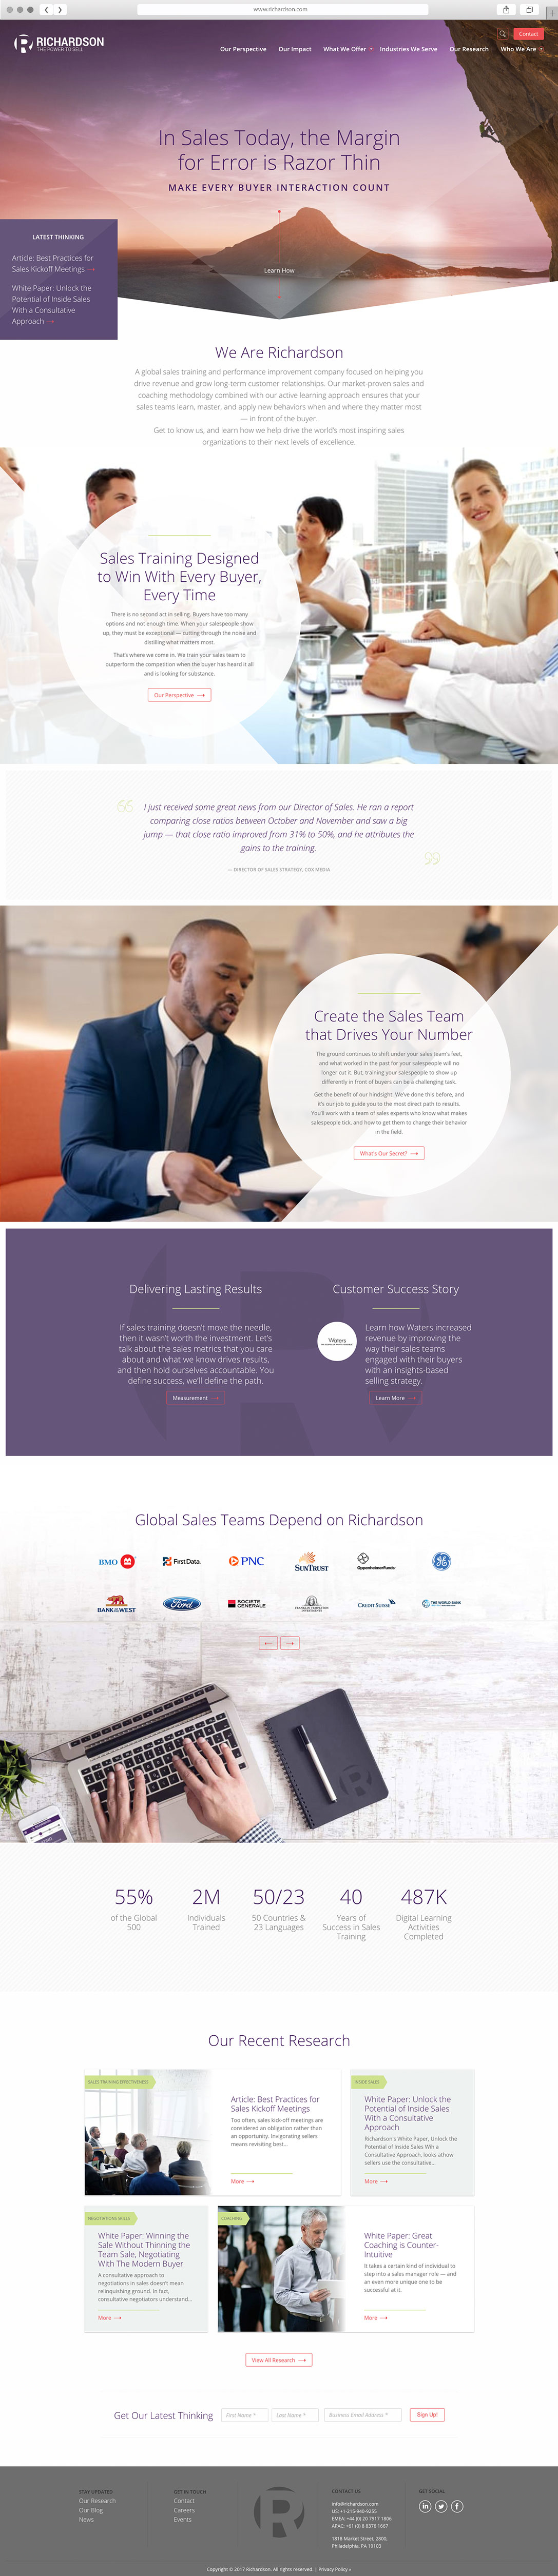 User Interface Design for Corporate Website